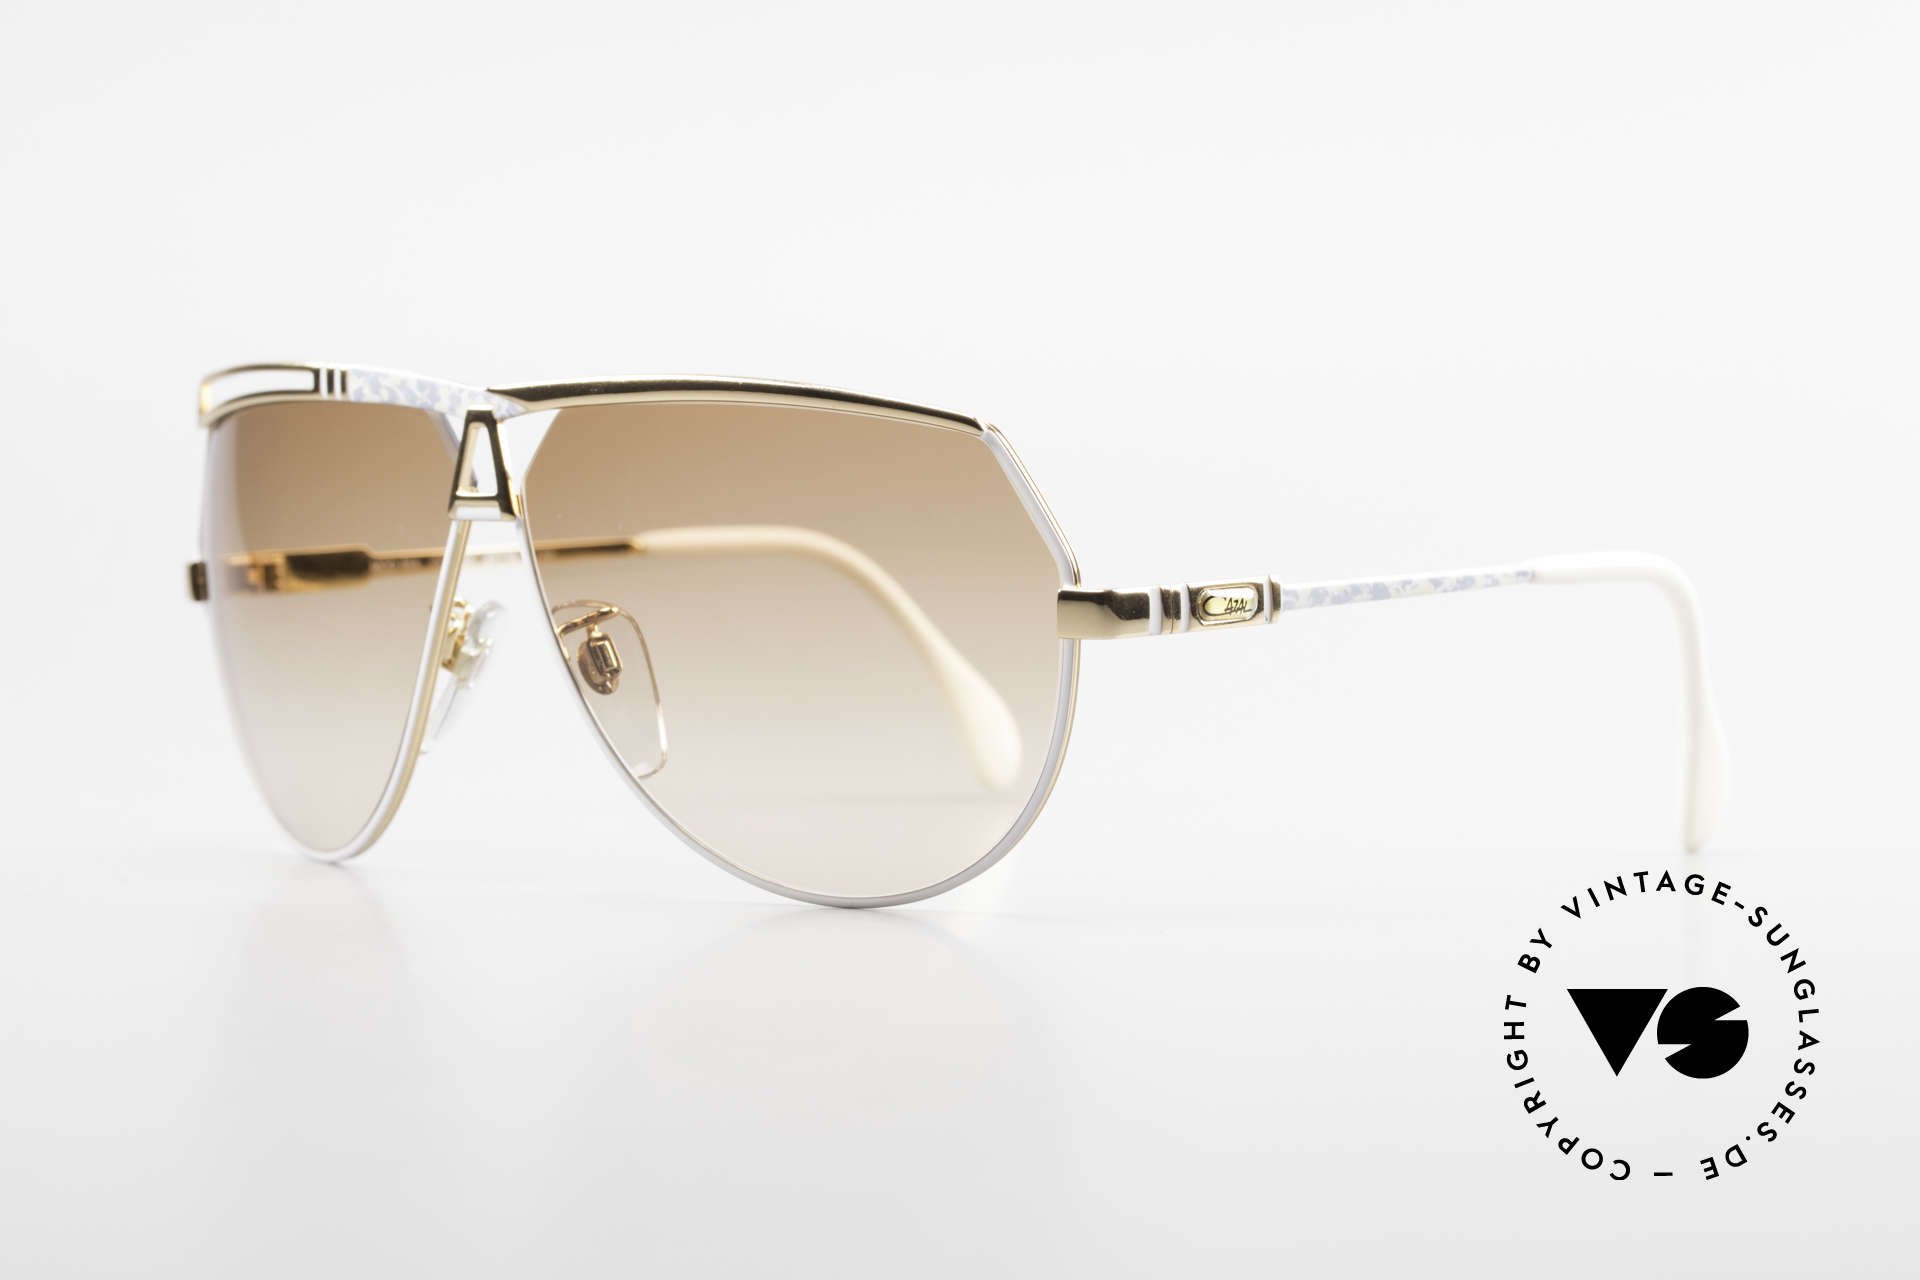 Cazal 954 Vintage XL Designer Shades, aviator design with huge lenses & great coloring, Made for Men and Women